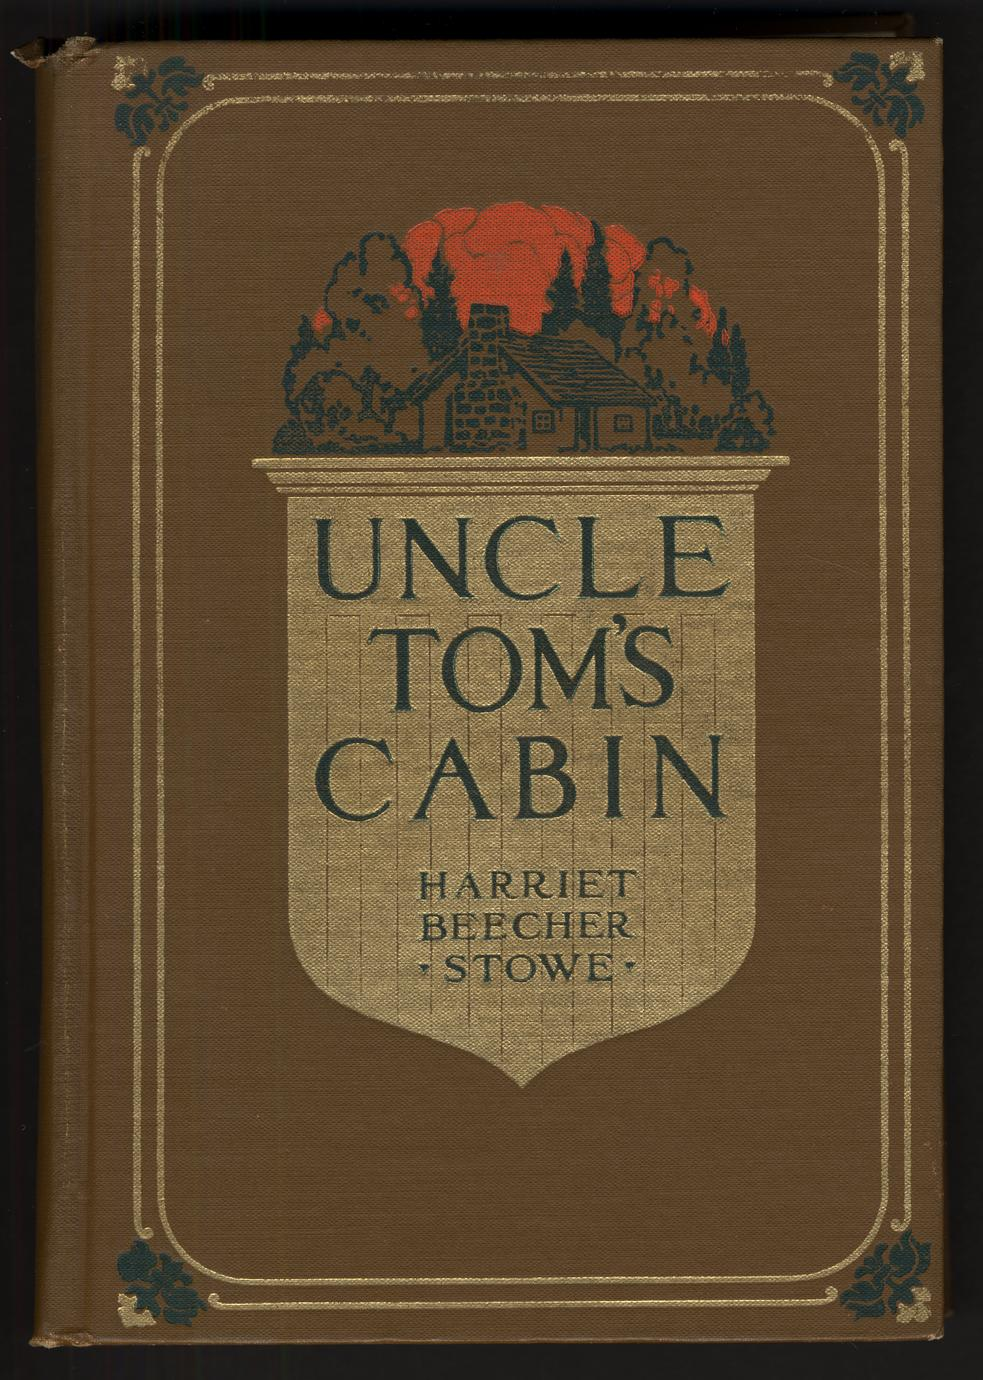 Uncle Tom's cabin : a tale of life among the lowly (1 of 2)